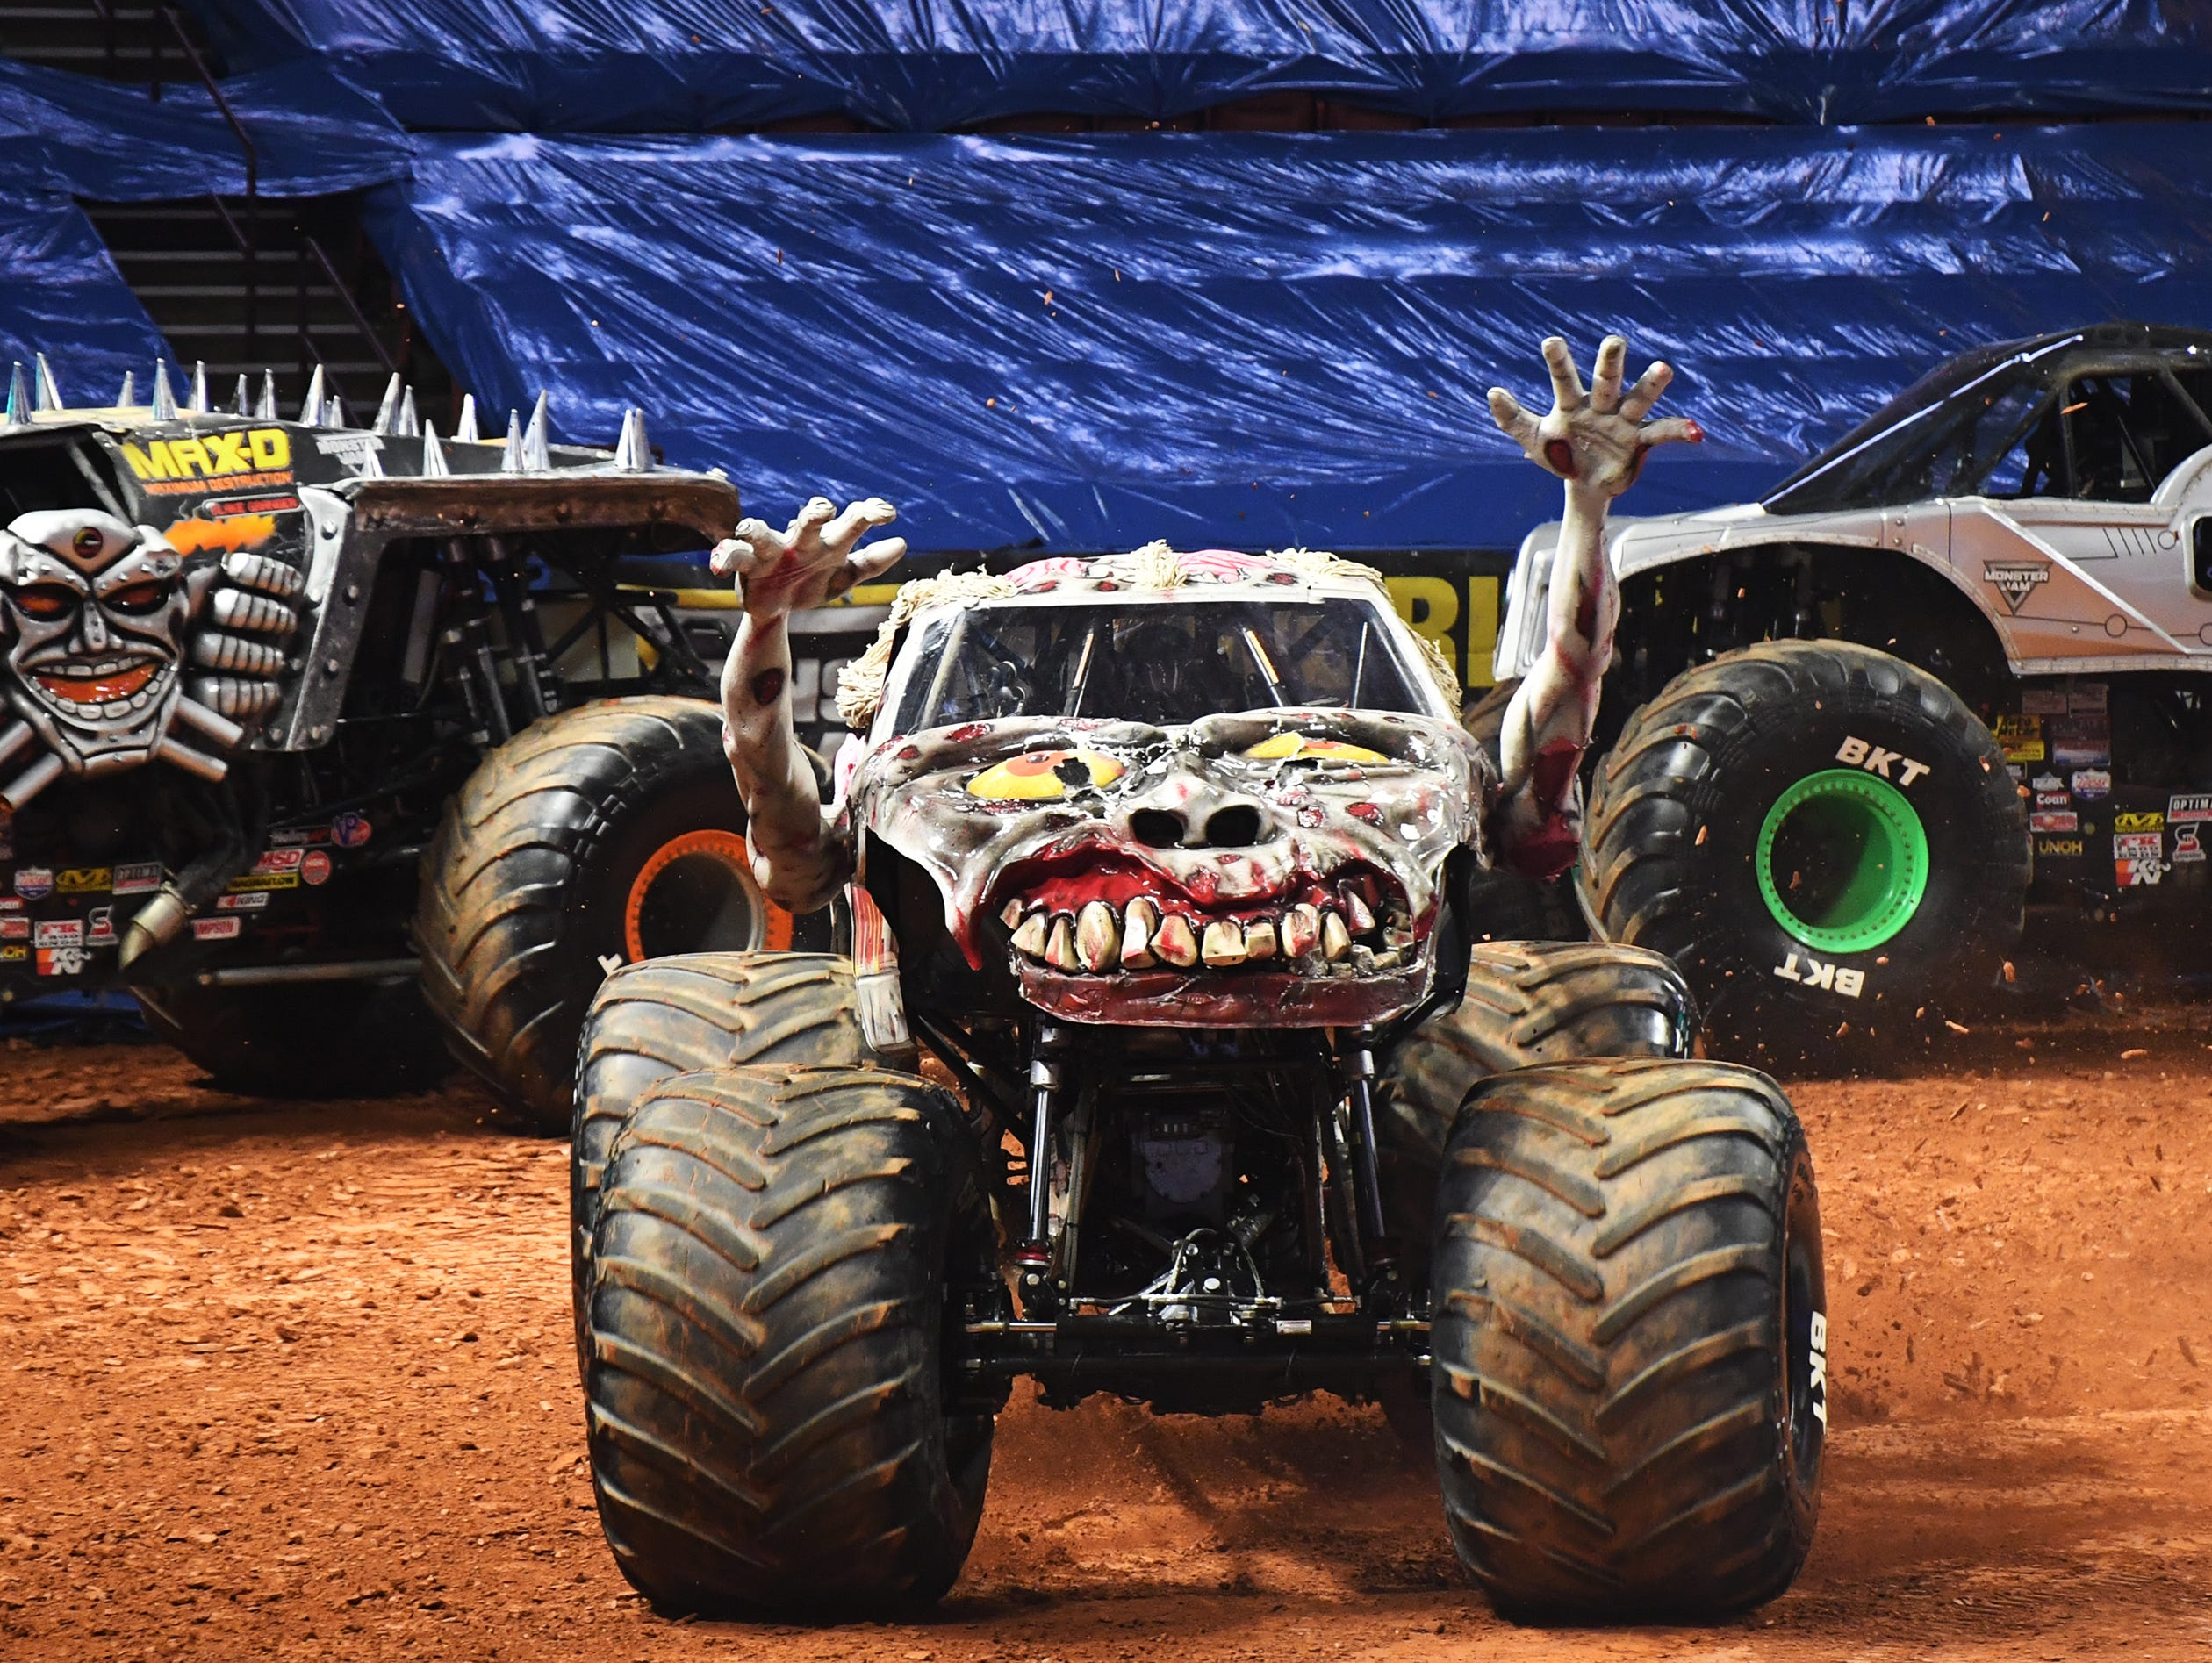 A driver competes in Zombie during the Monster Jam Racing competition at Bon Secours Wellness Arena Friday, Feb. 8, 2019.